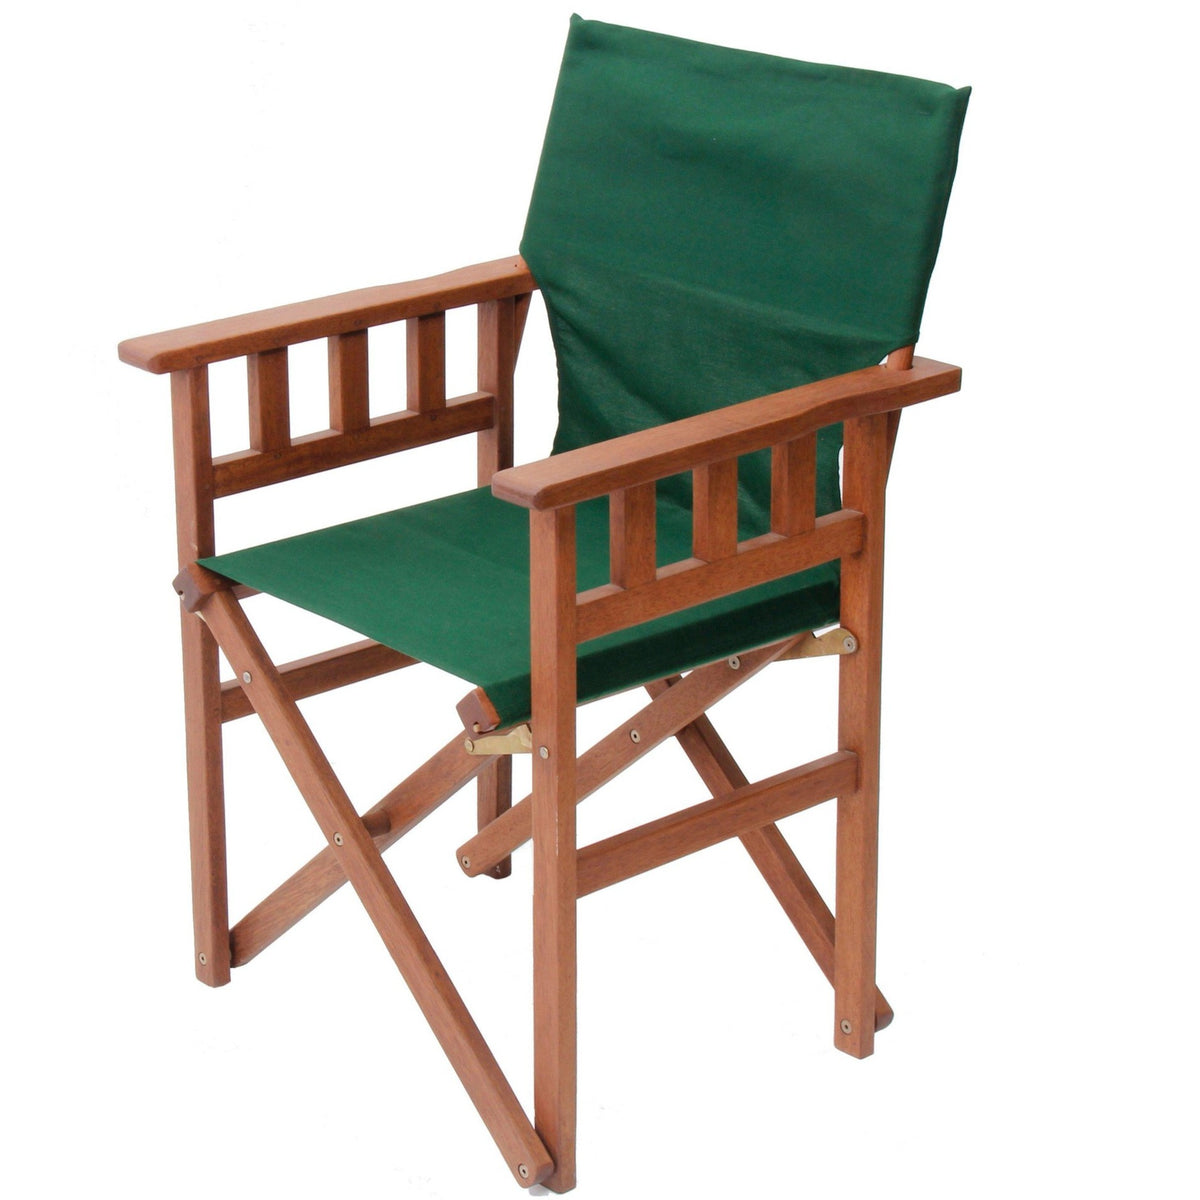 Pangean Campaign Chair, Forest Green, from Byer of Maine